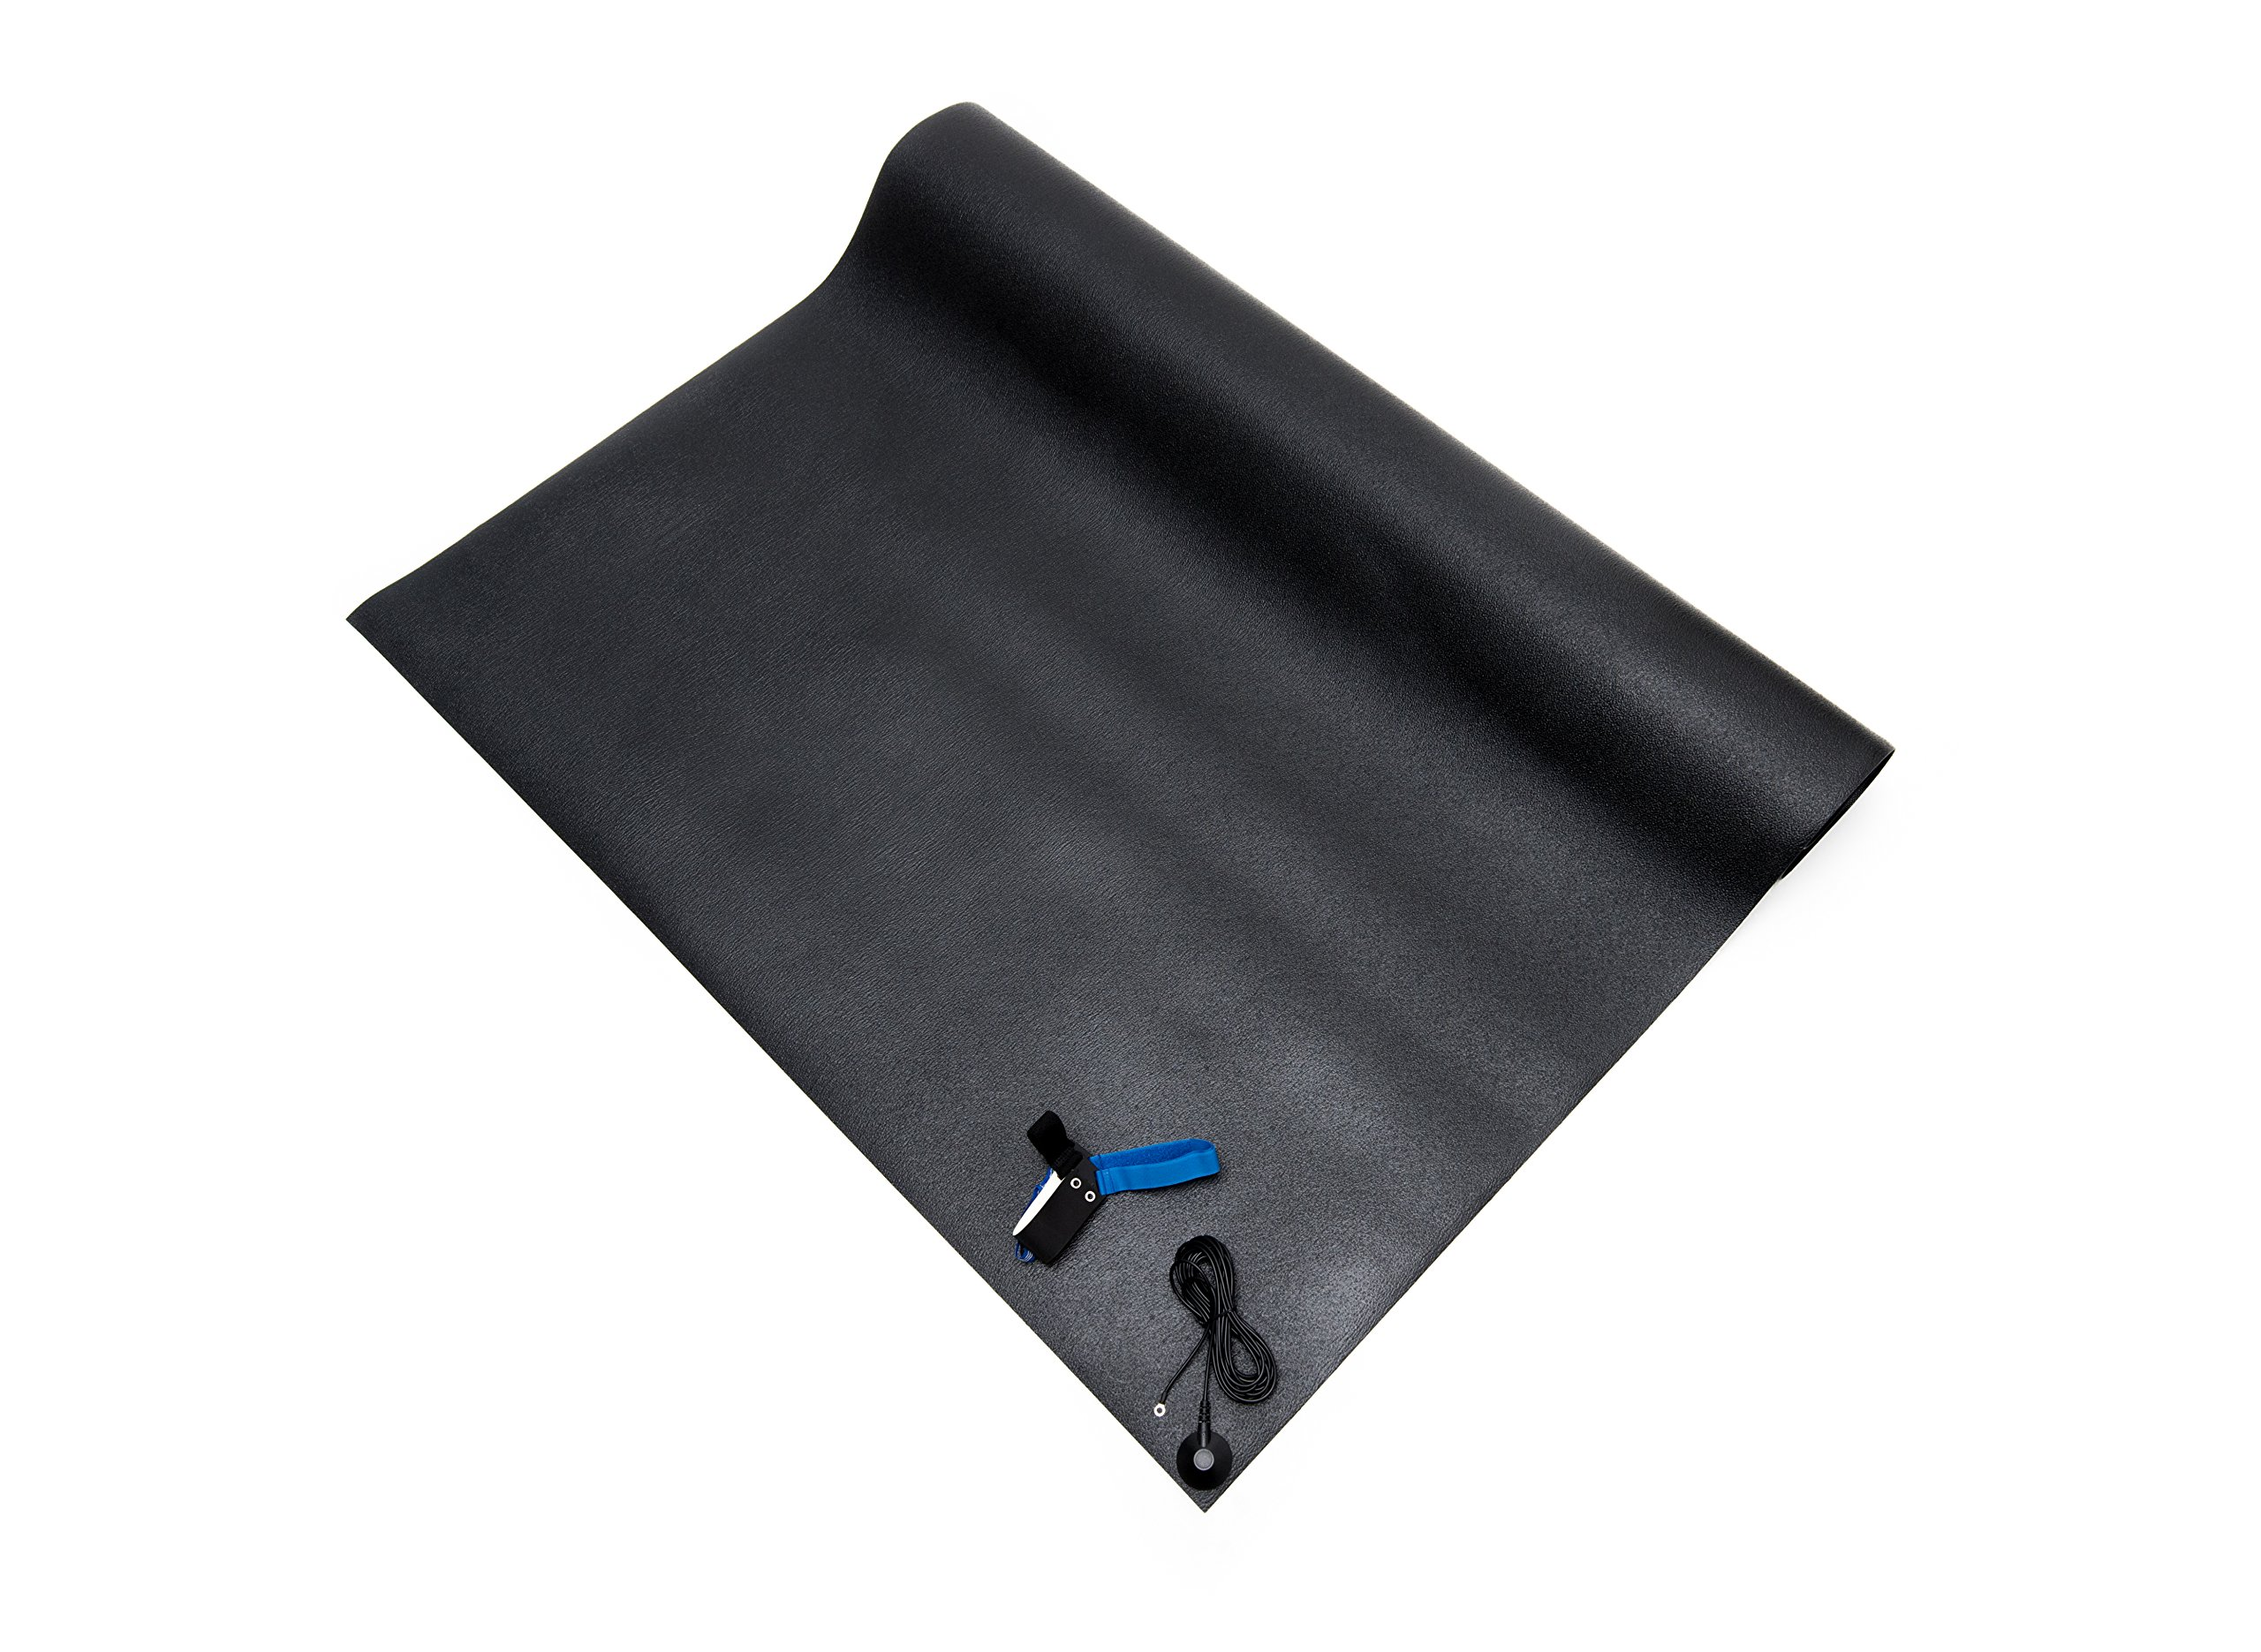 Bertech PVC Conductive Floor Mat Kit with a Heel Grounder & Ground Cord, 4' Wide x 6' Long x 0.08'' Thick, Black